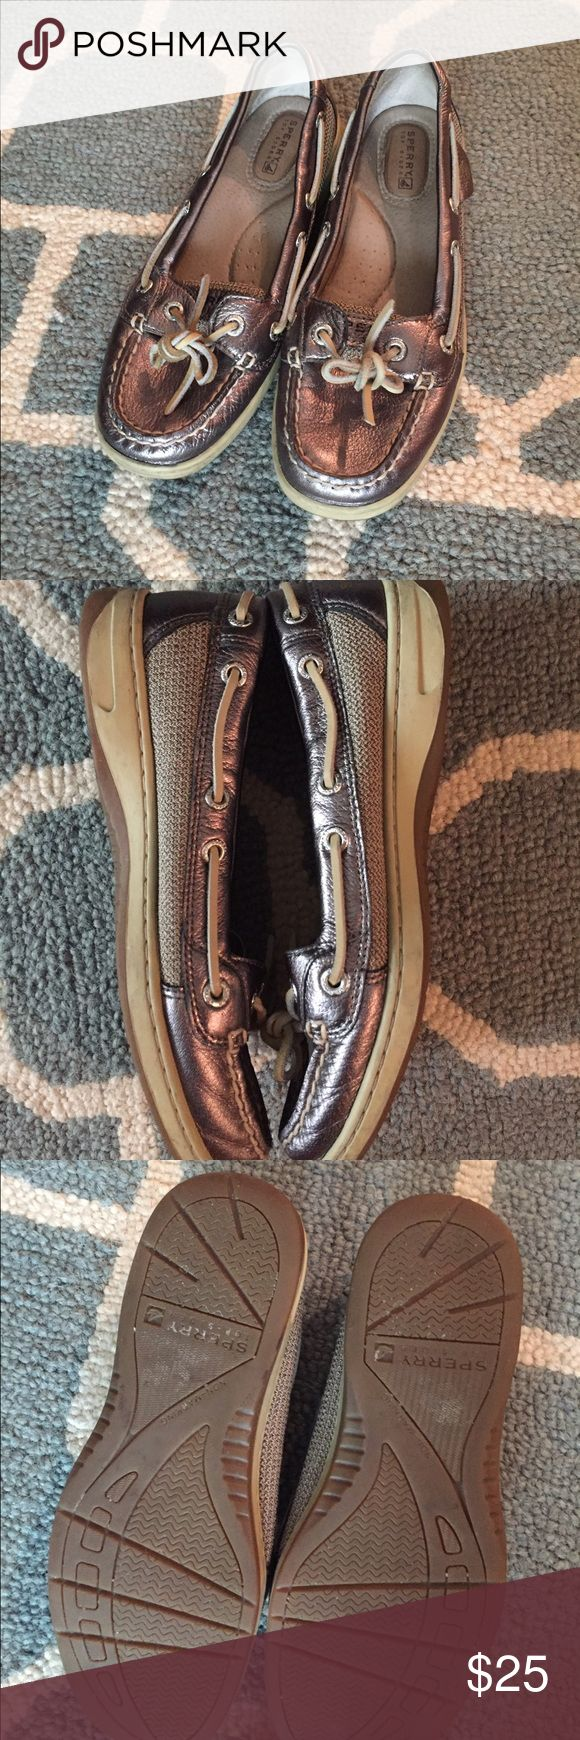 👯weekend sale! 👯 Glam-casual pewter sperrys This weekend sale is no joke! Price goes back on Monday! These sperrys are a gorgeous pewter--a lovely mix between gold and silver. I've only worn these a handful of times and I hate to see them go....stupid upcoming tax day 😕! They're PERFECT for Fall. Size 6.5 Sperry Shoes Flats & Loafers